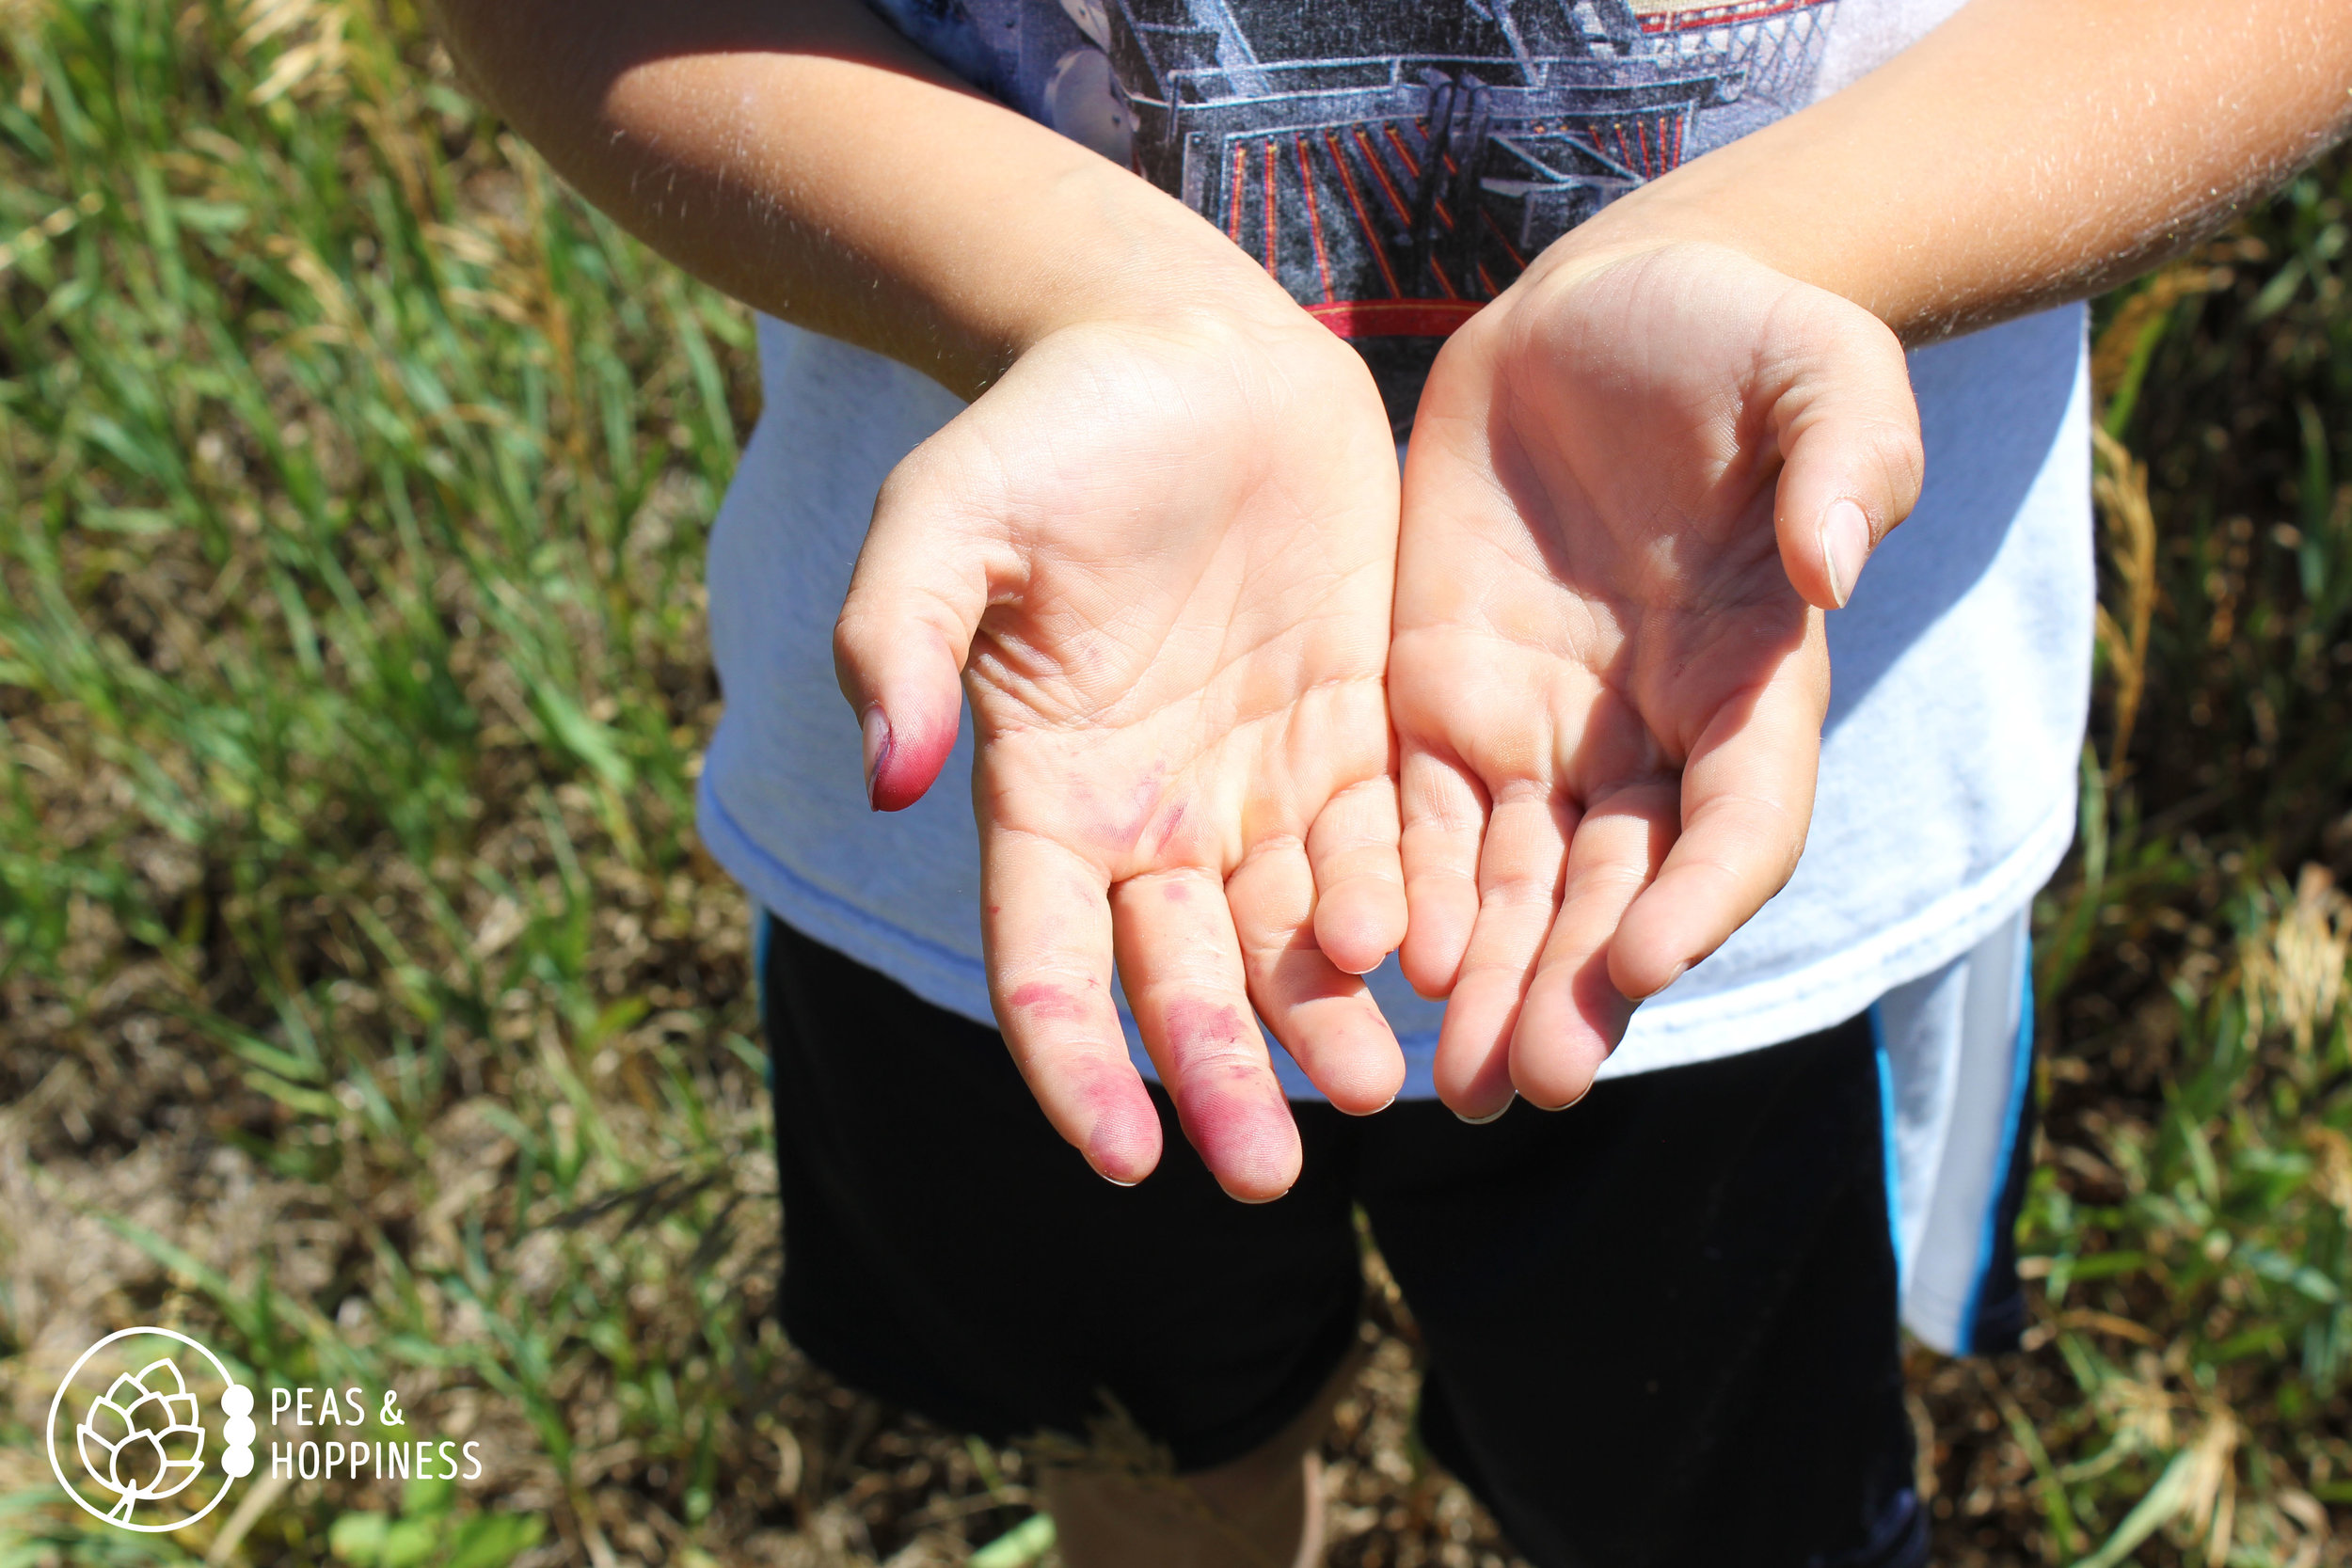 Small, stained hands